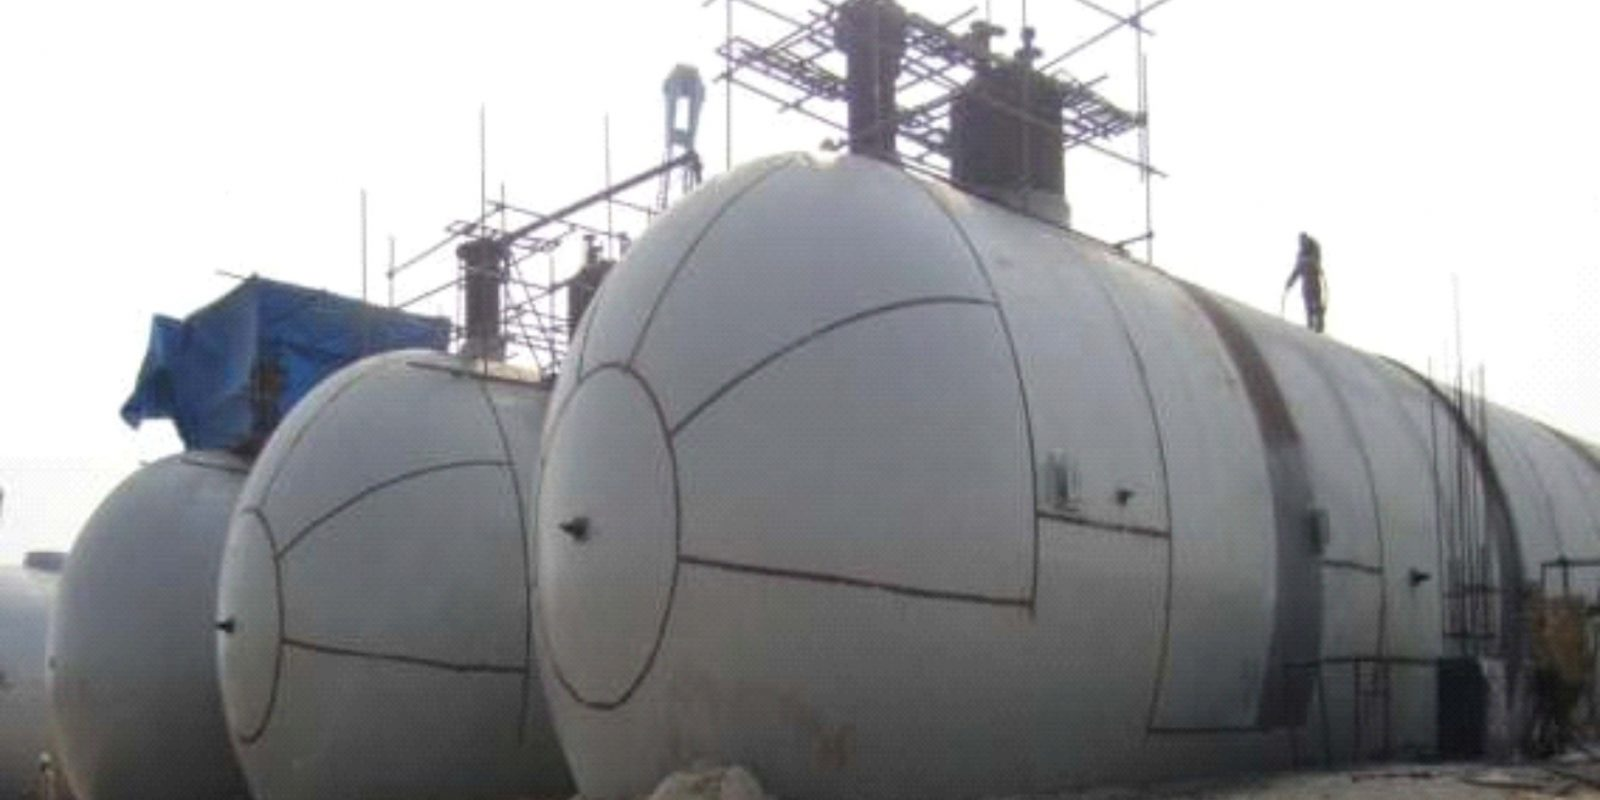 Fabrication & Erection of Storage Facilities for Paradip Refinery BOOT-3